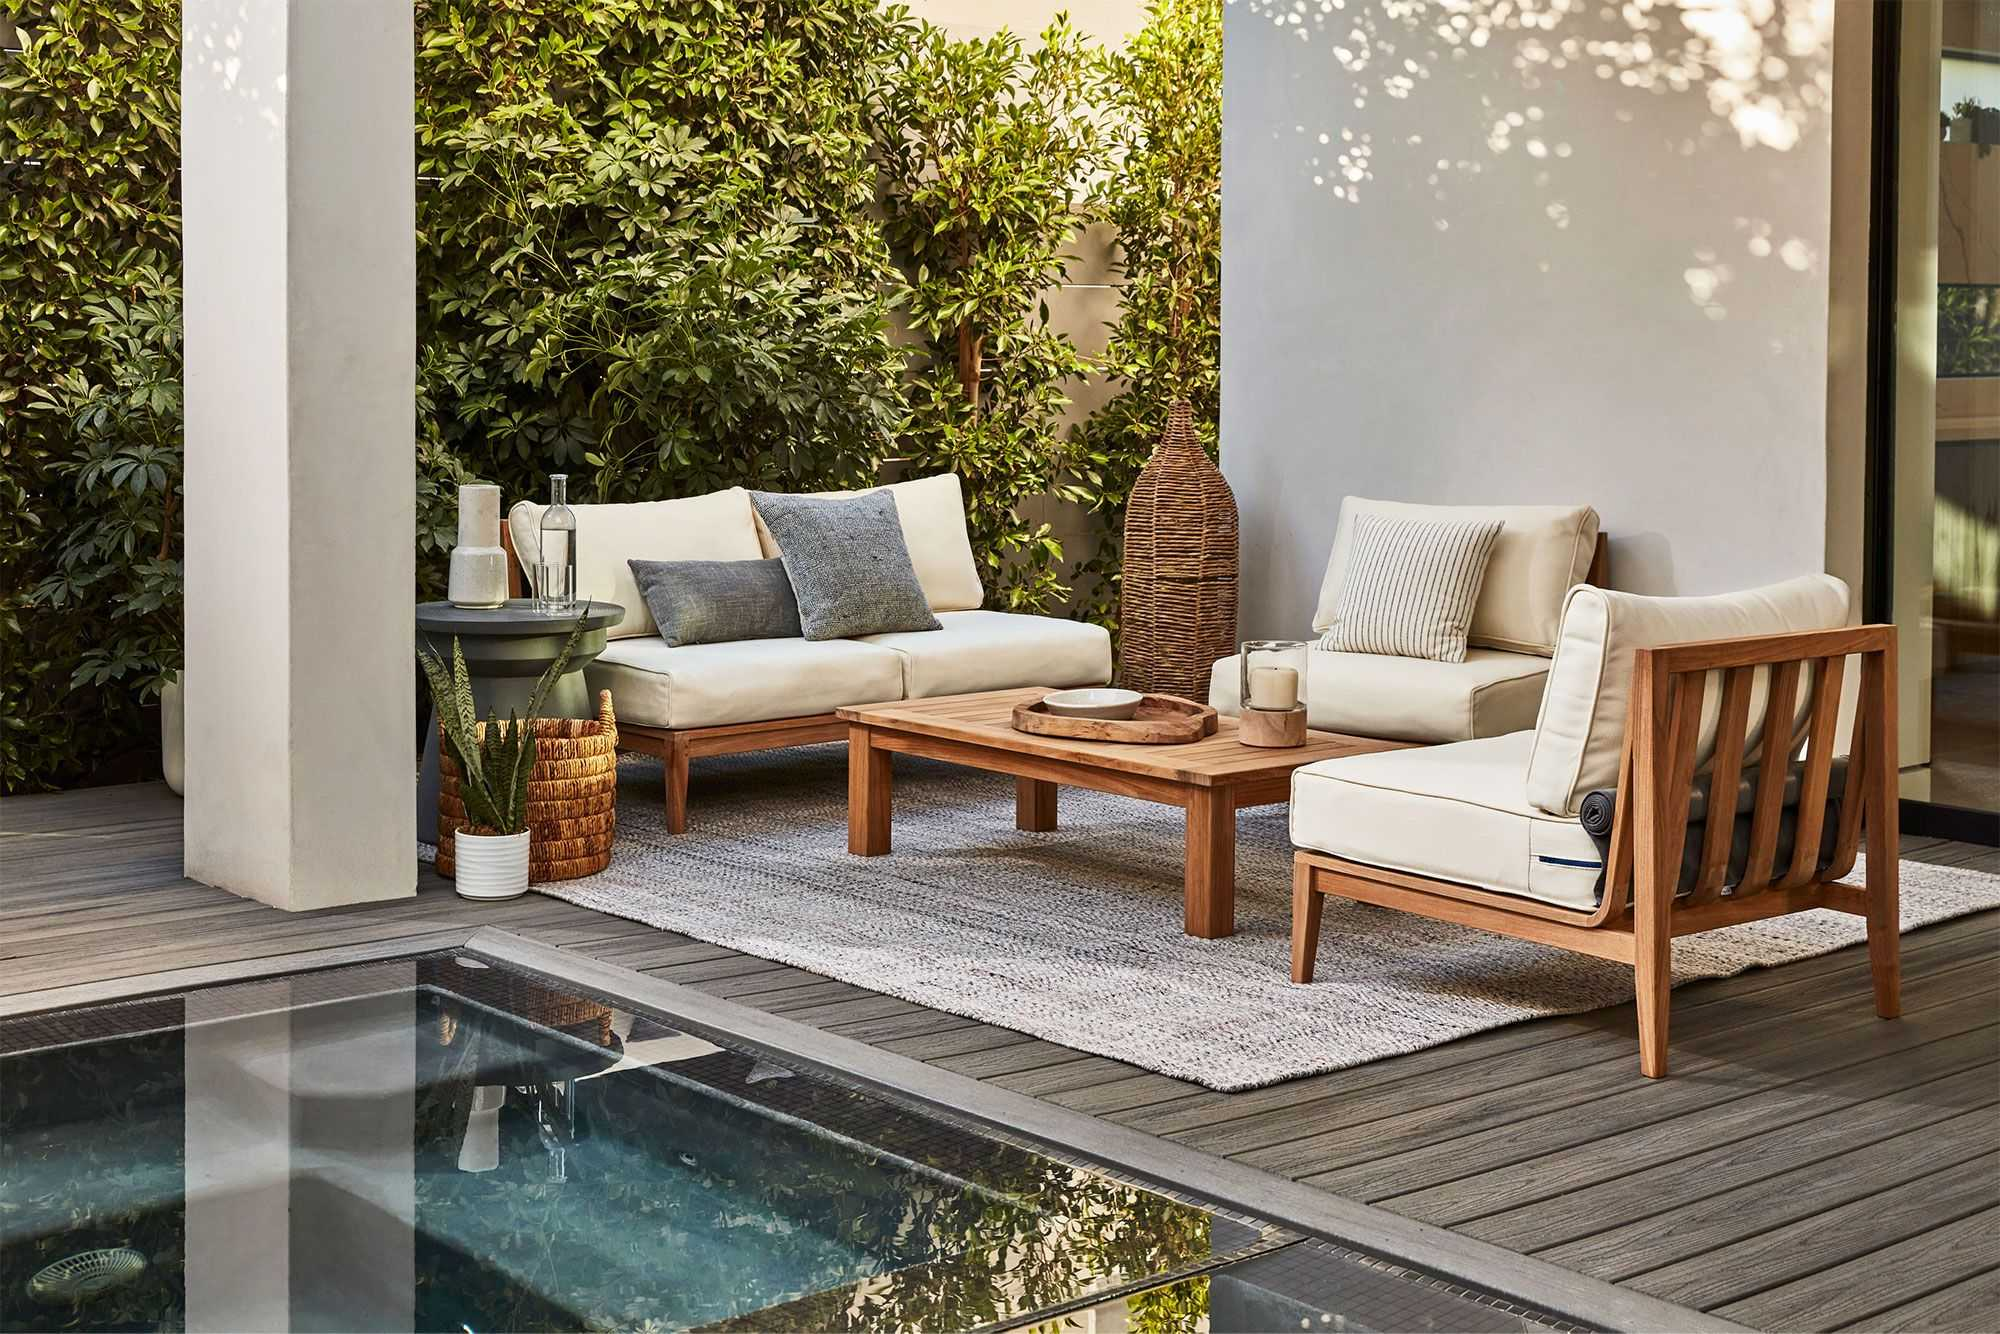 patio table with chairs and white cushions near a pool